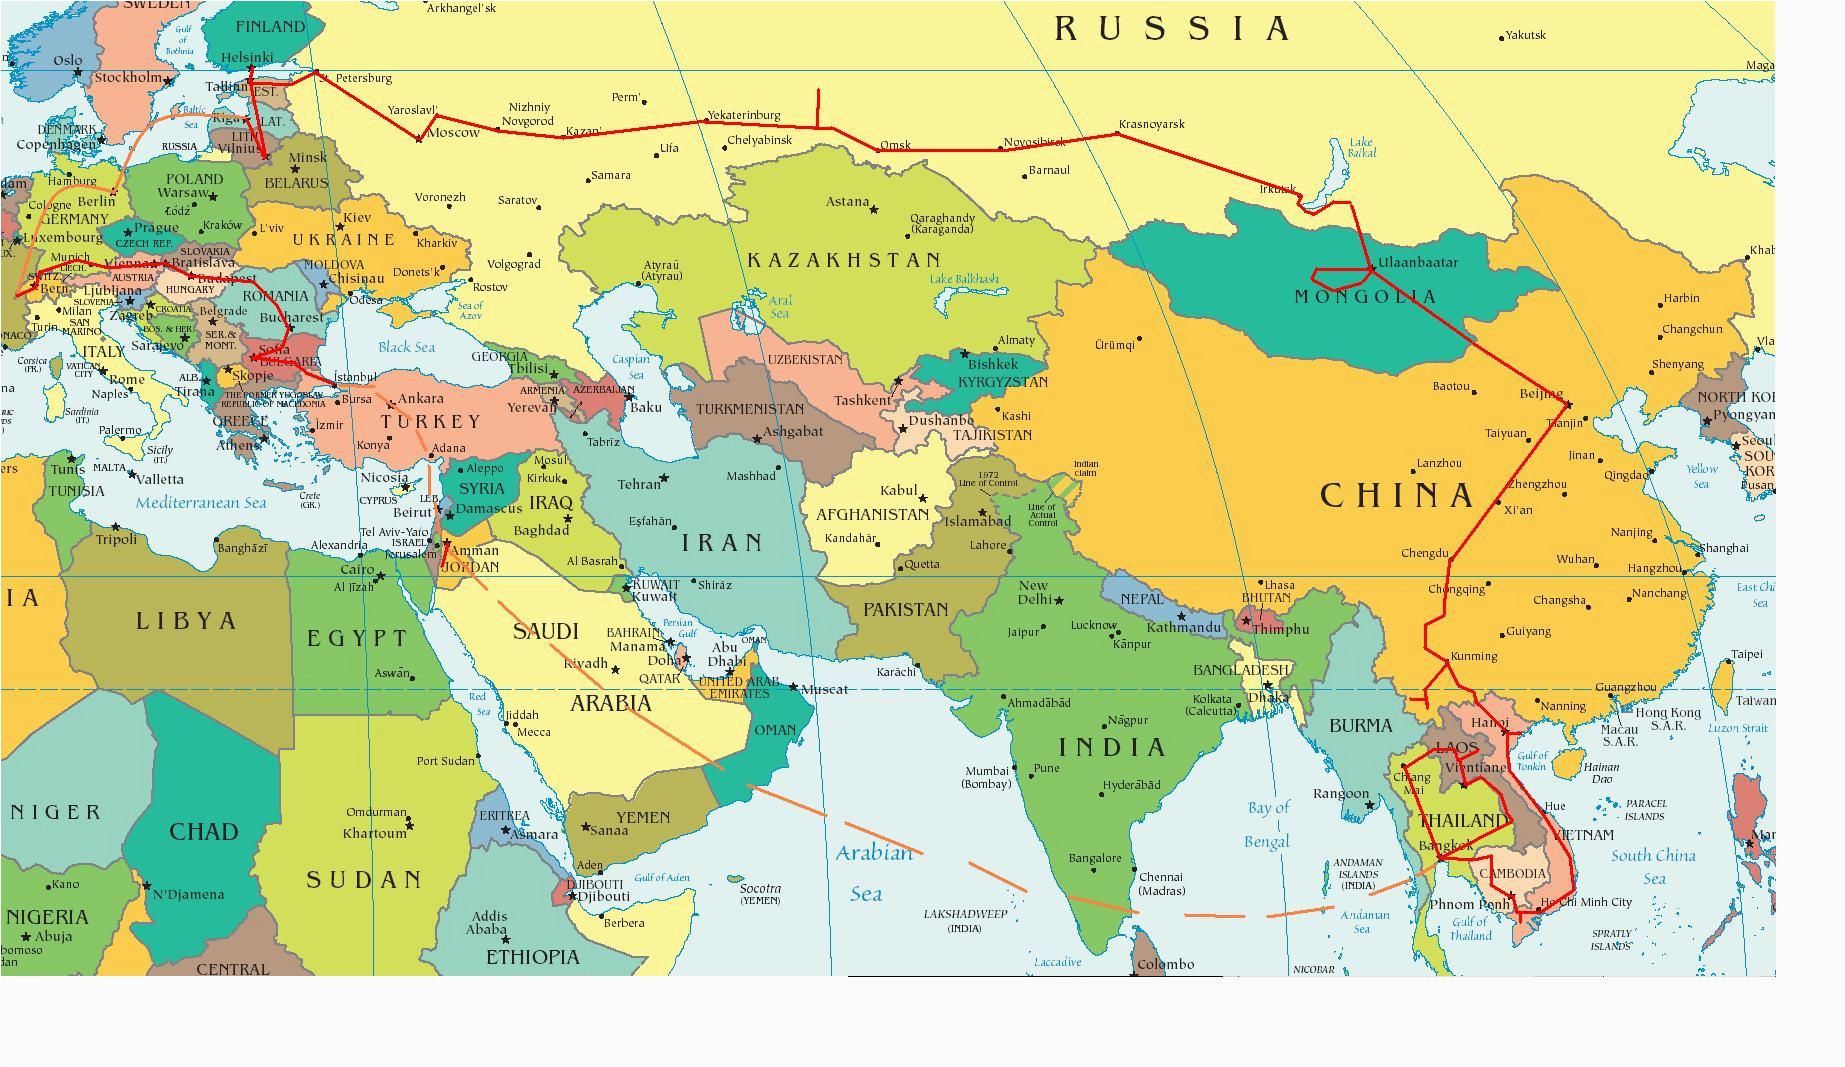 eastern europe and middle east partial europe middle east